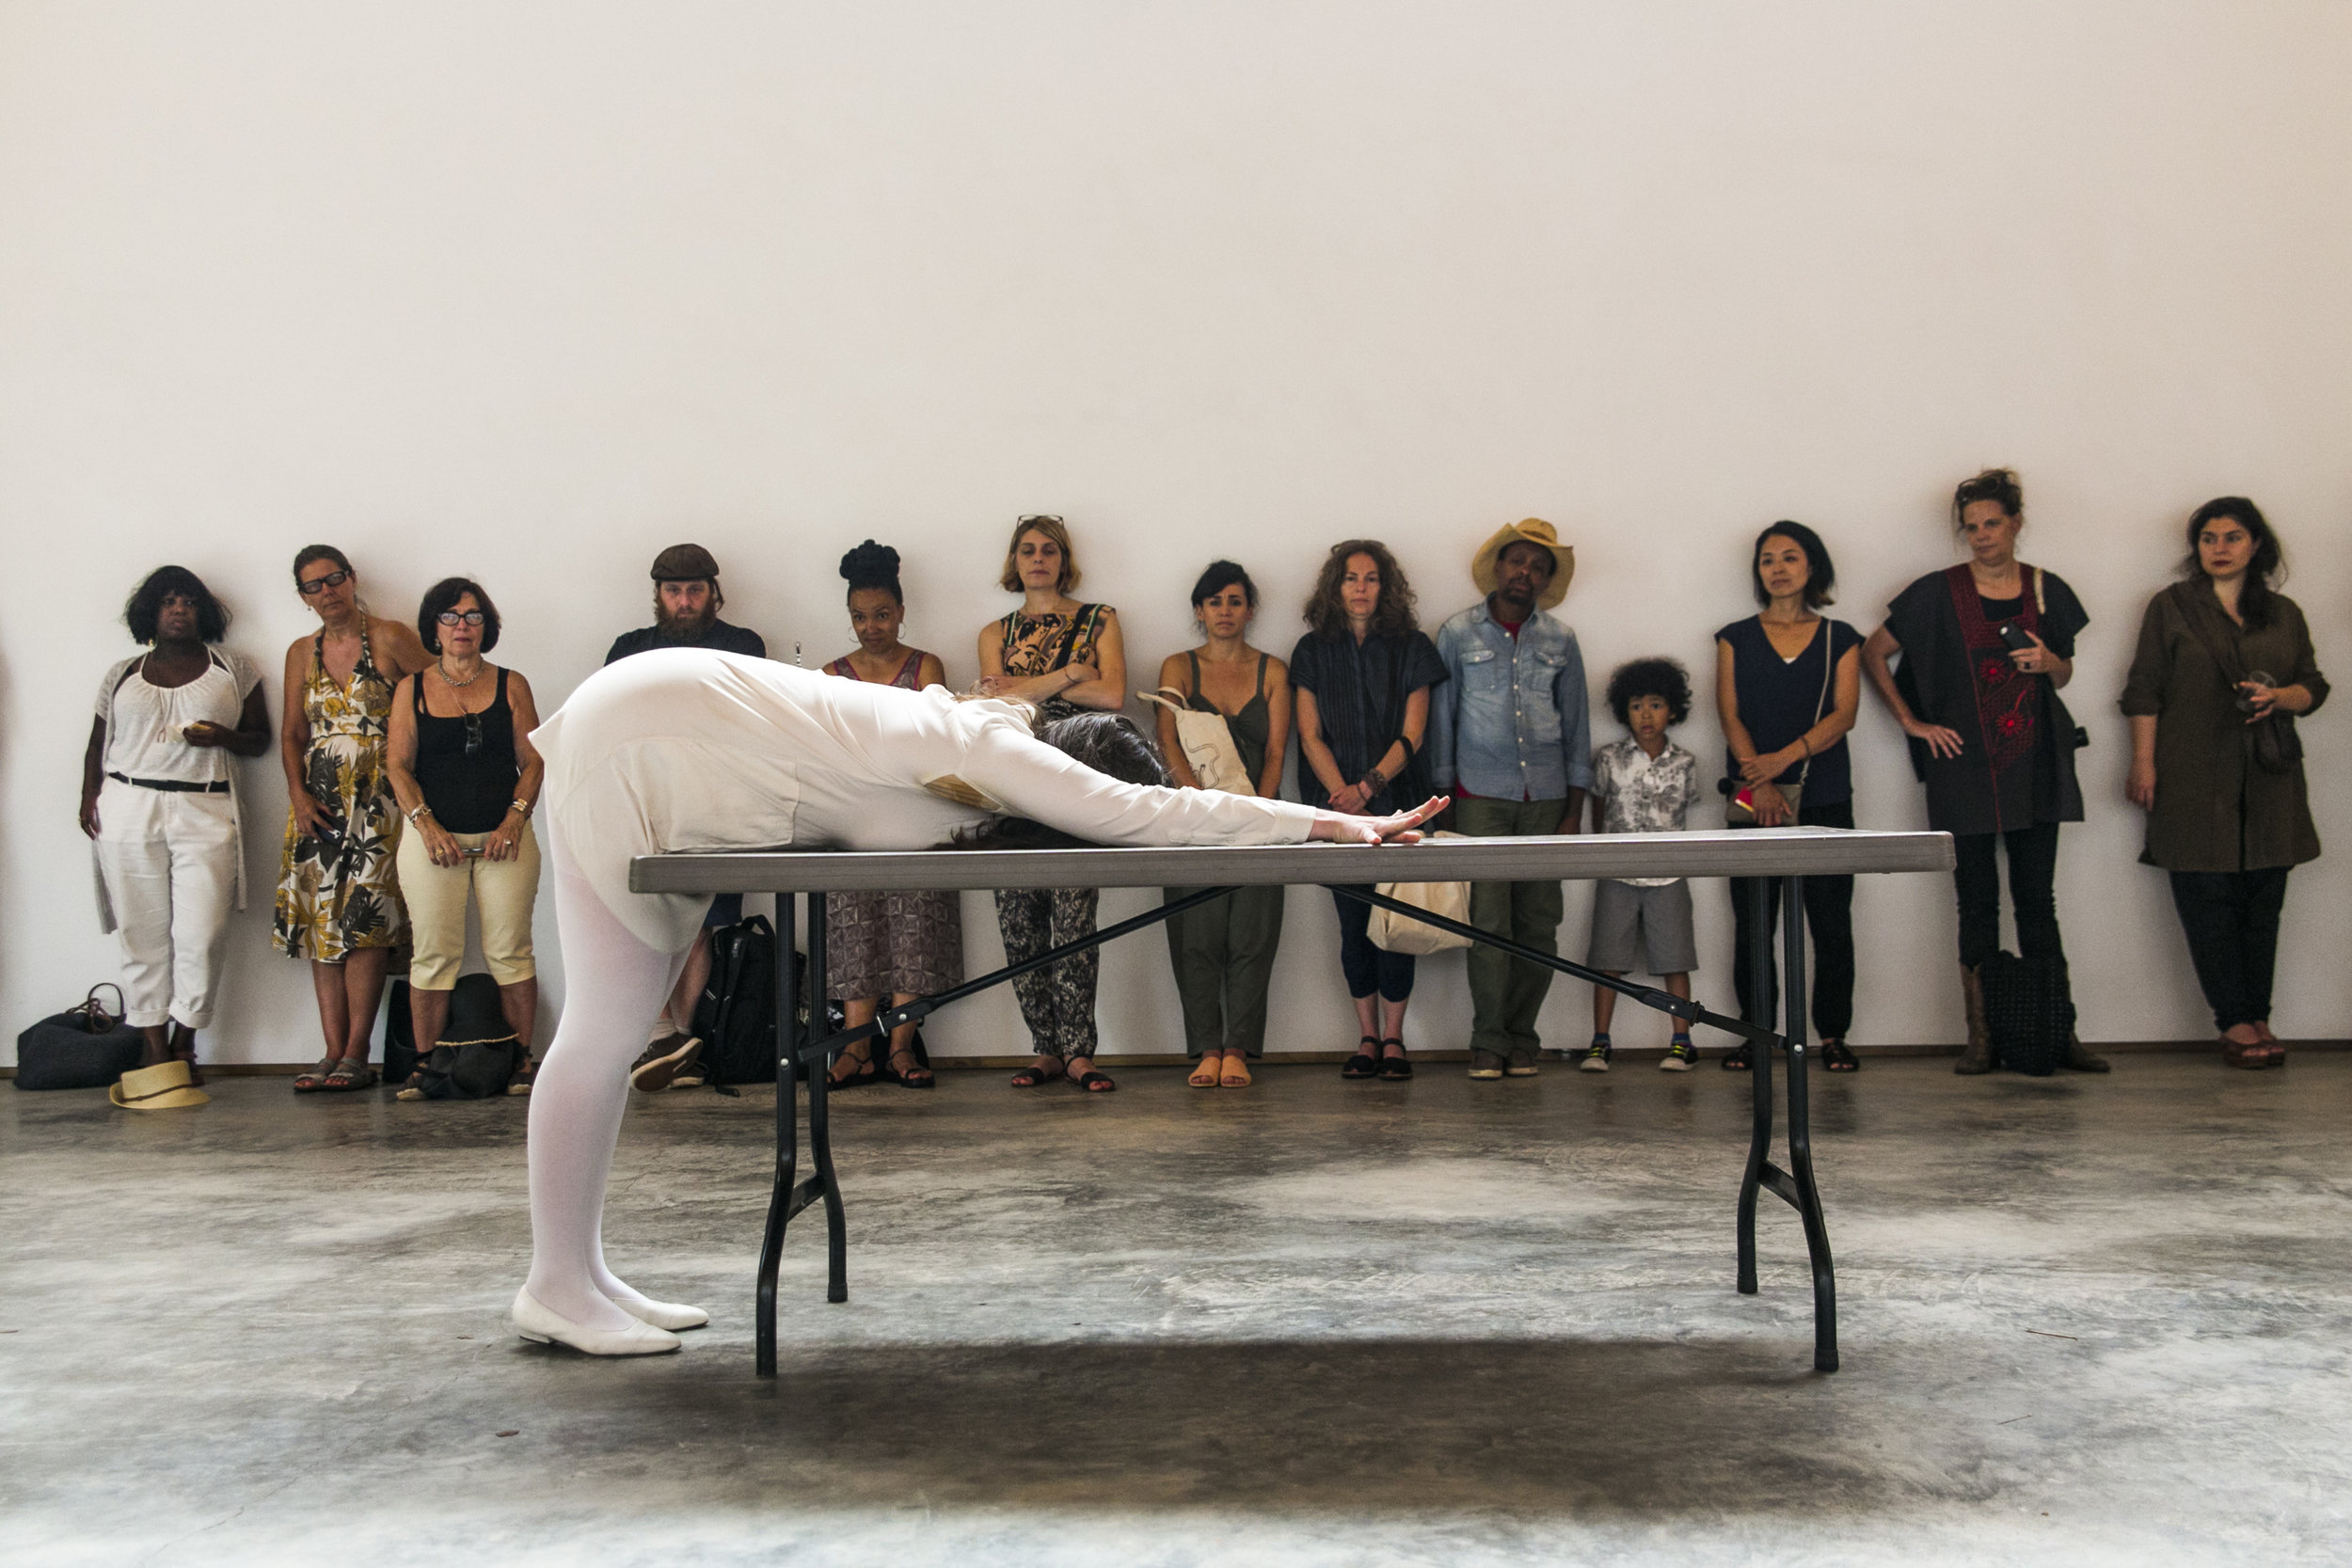 Alex Beriault, Untitled (Performance with Table). Credit: Whitney Browne